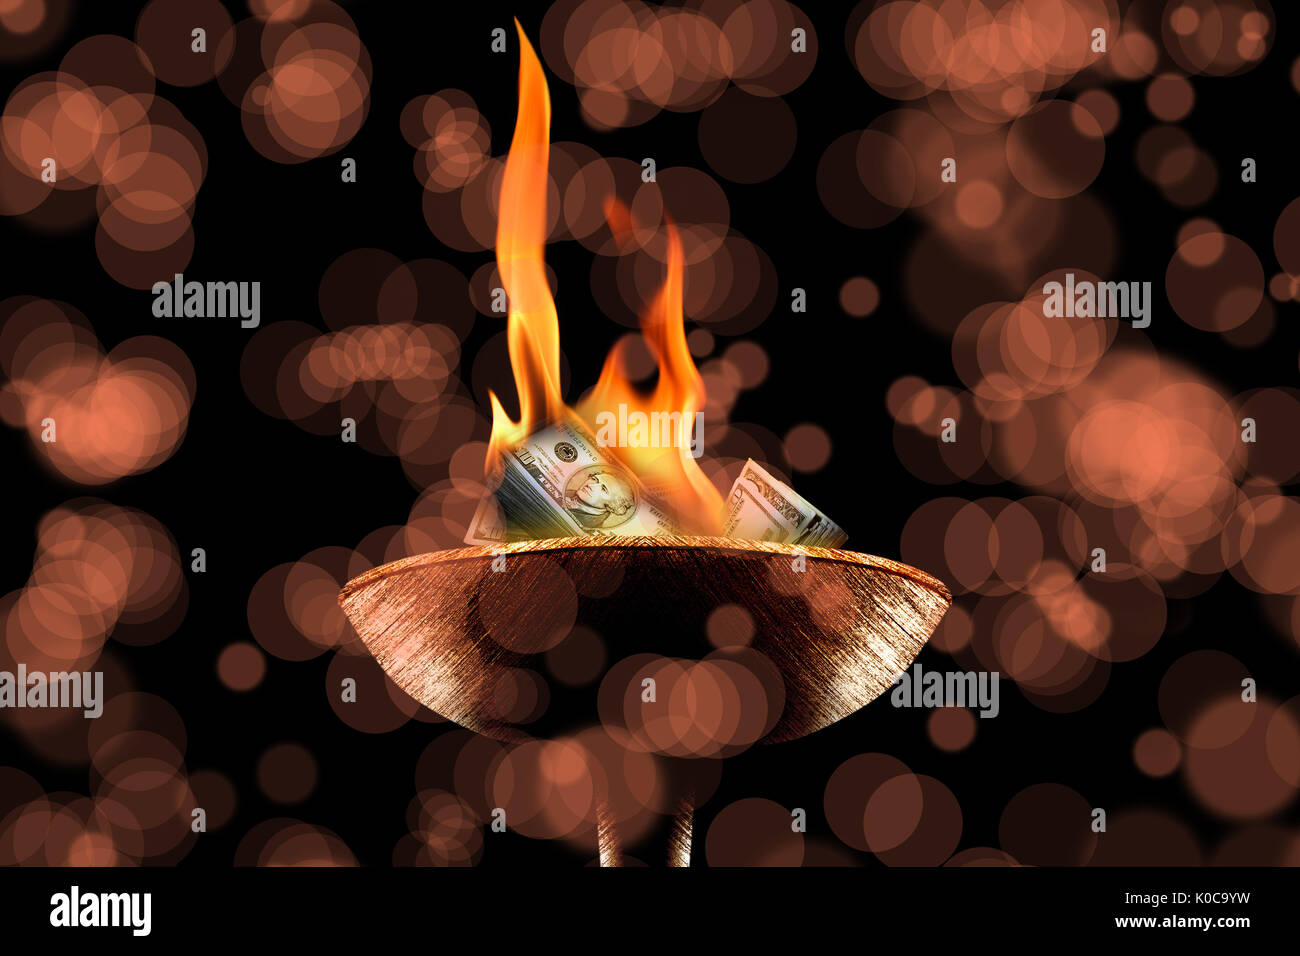 close up shot of money burning in flaming torch. Stock Photo